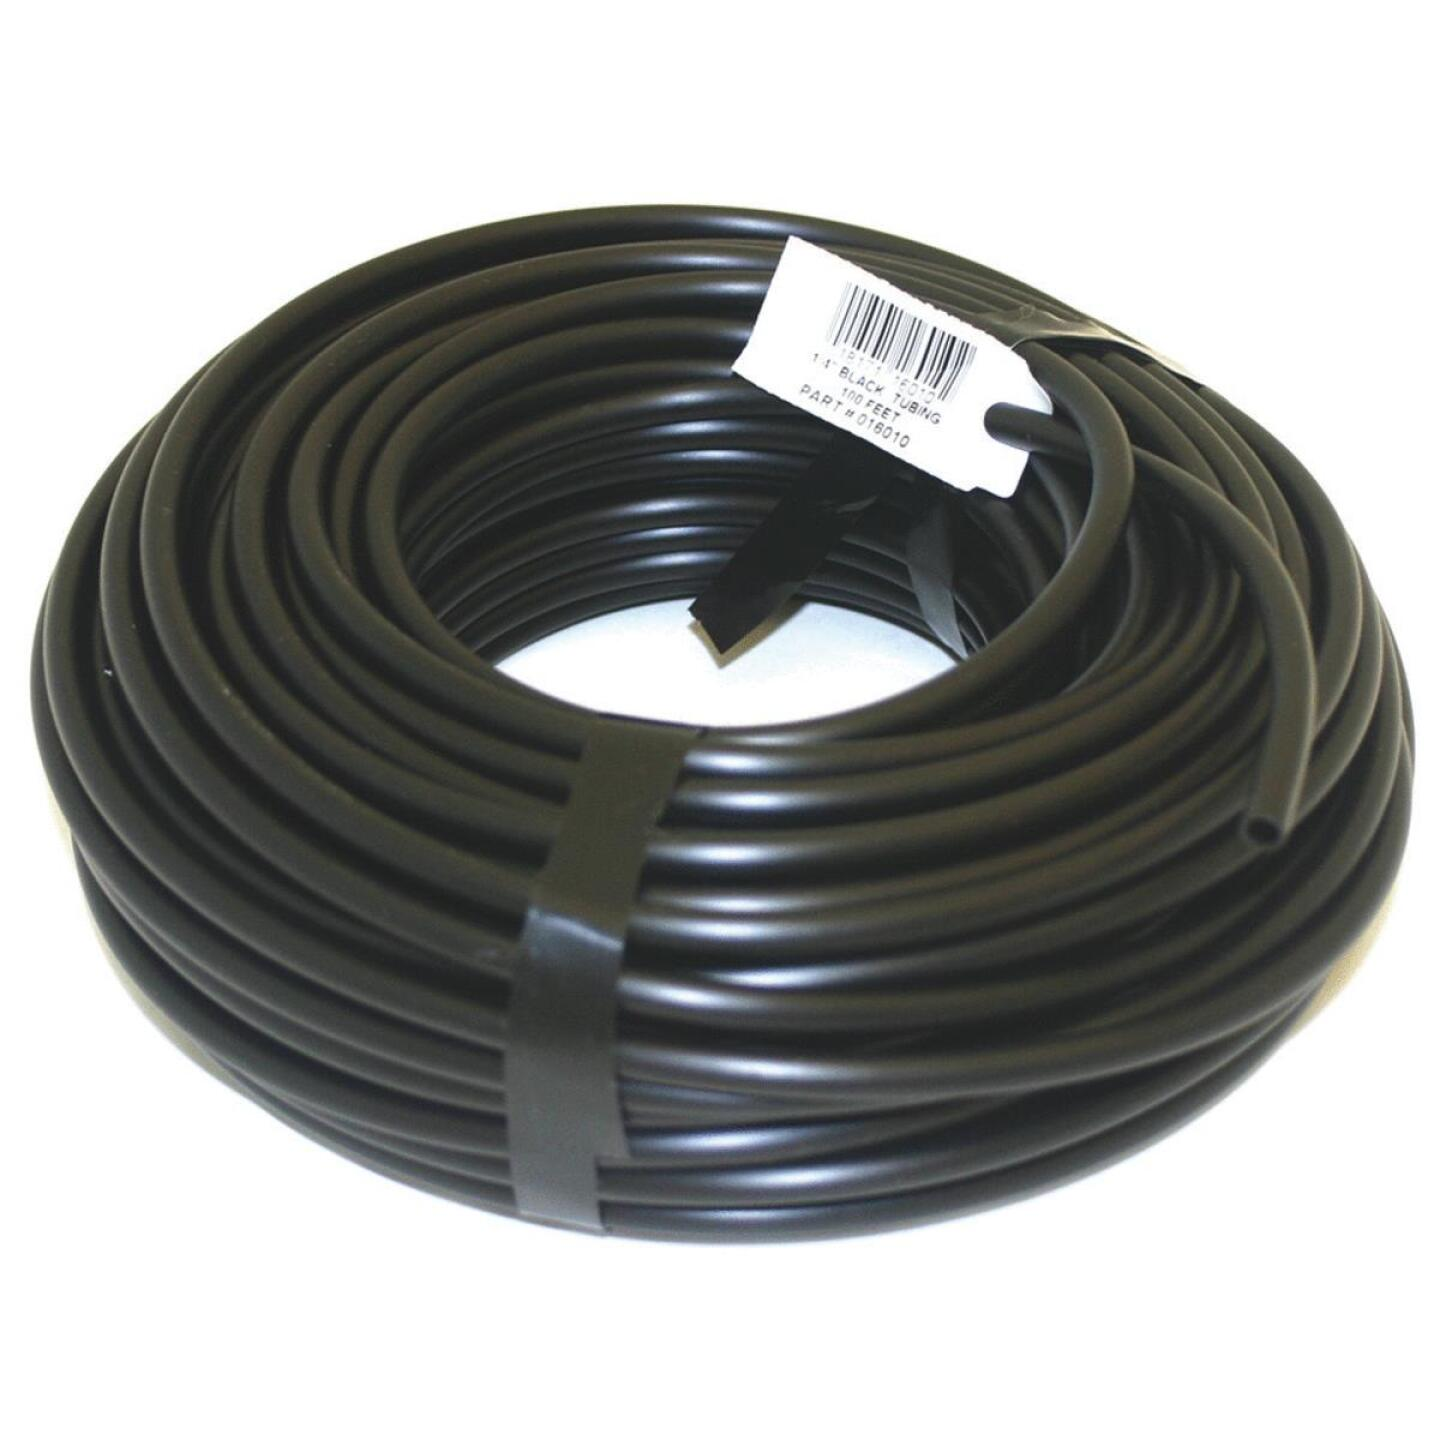 Raindrip 1/4 In. X 100 Ft. Black Poly Primary Drip Tubing Image 1